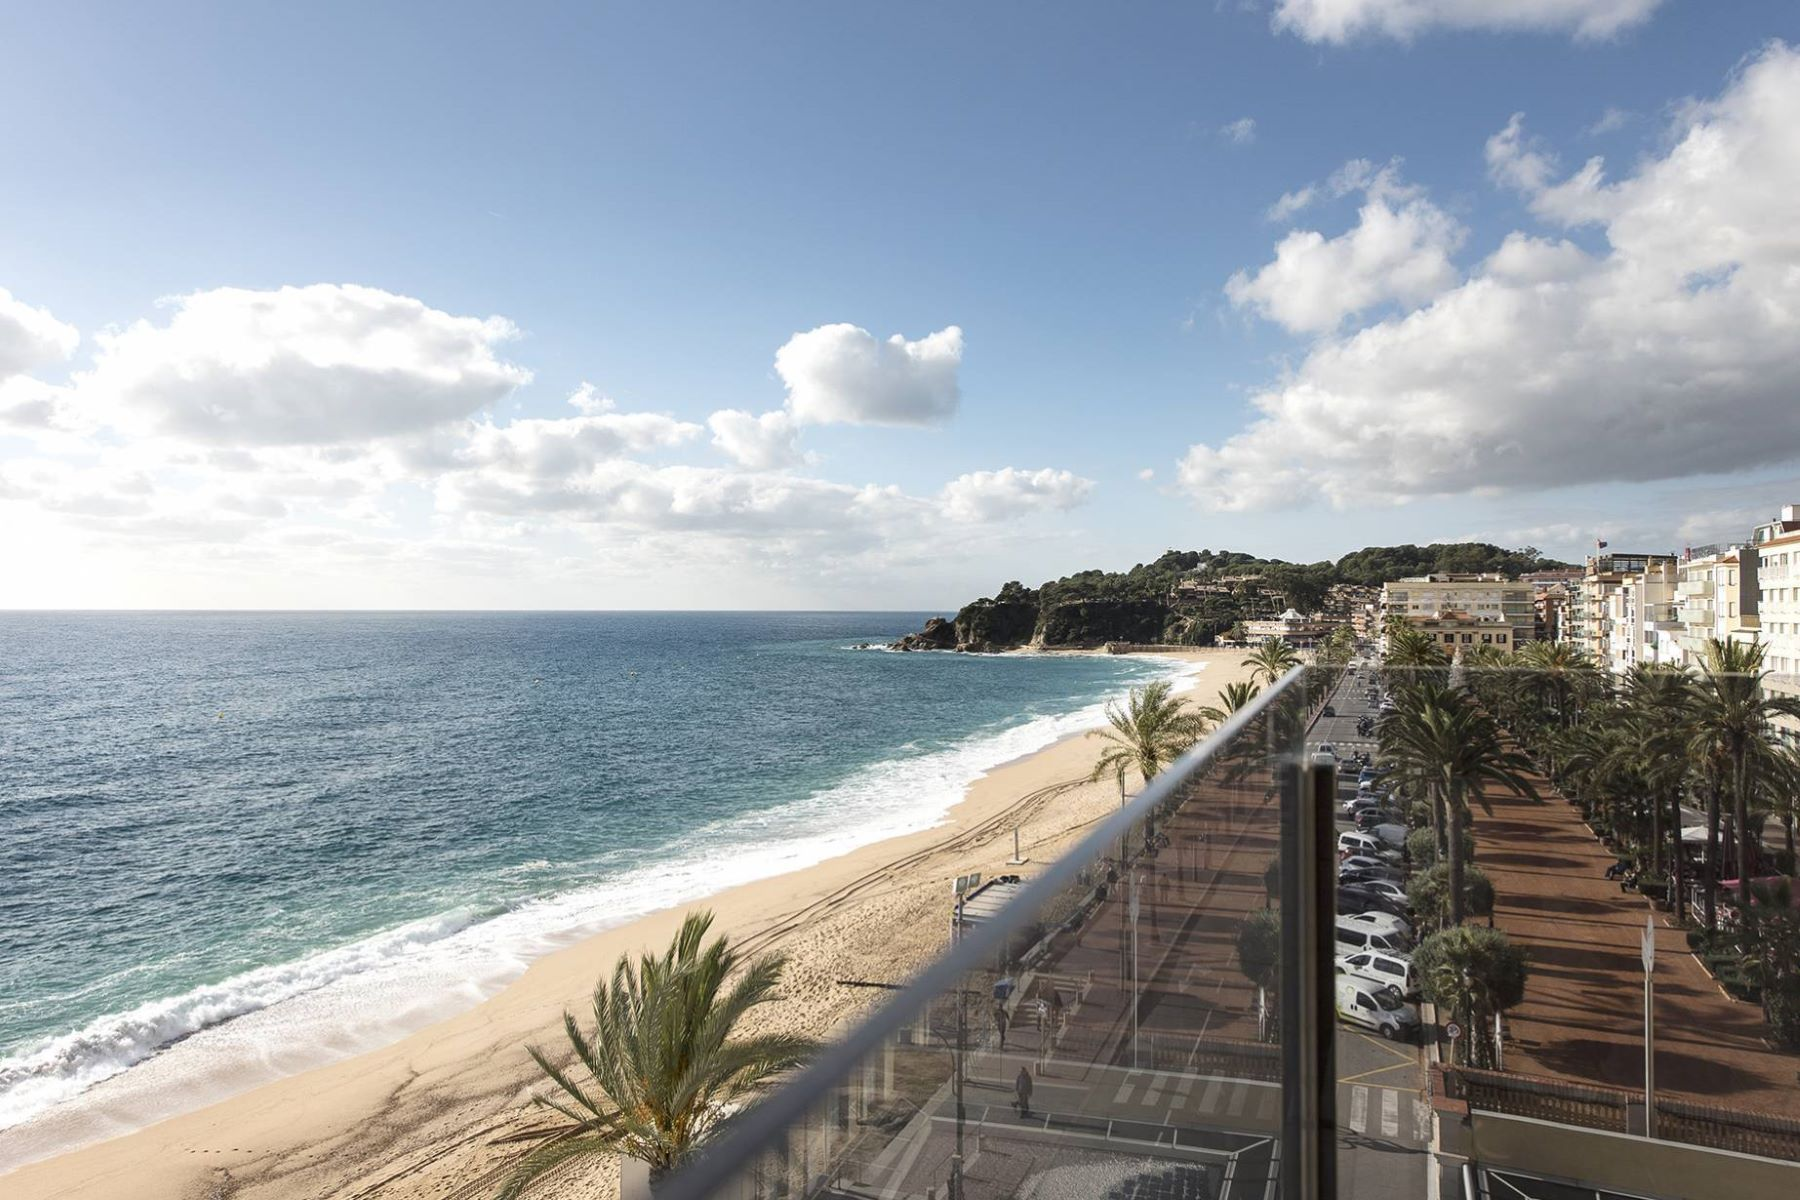 Appartement pour l Vente à Exclusive newly built apartment on the seafront Lloret De Mar, Costa Brava, 17310 Espagne